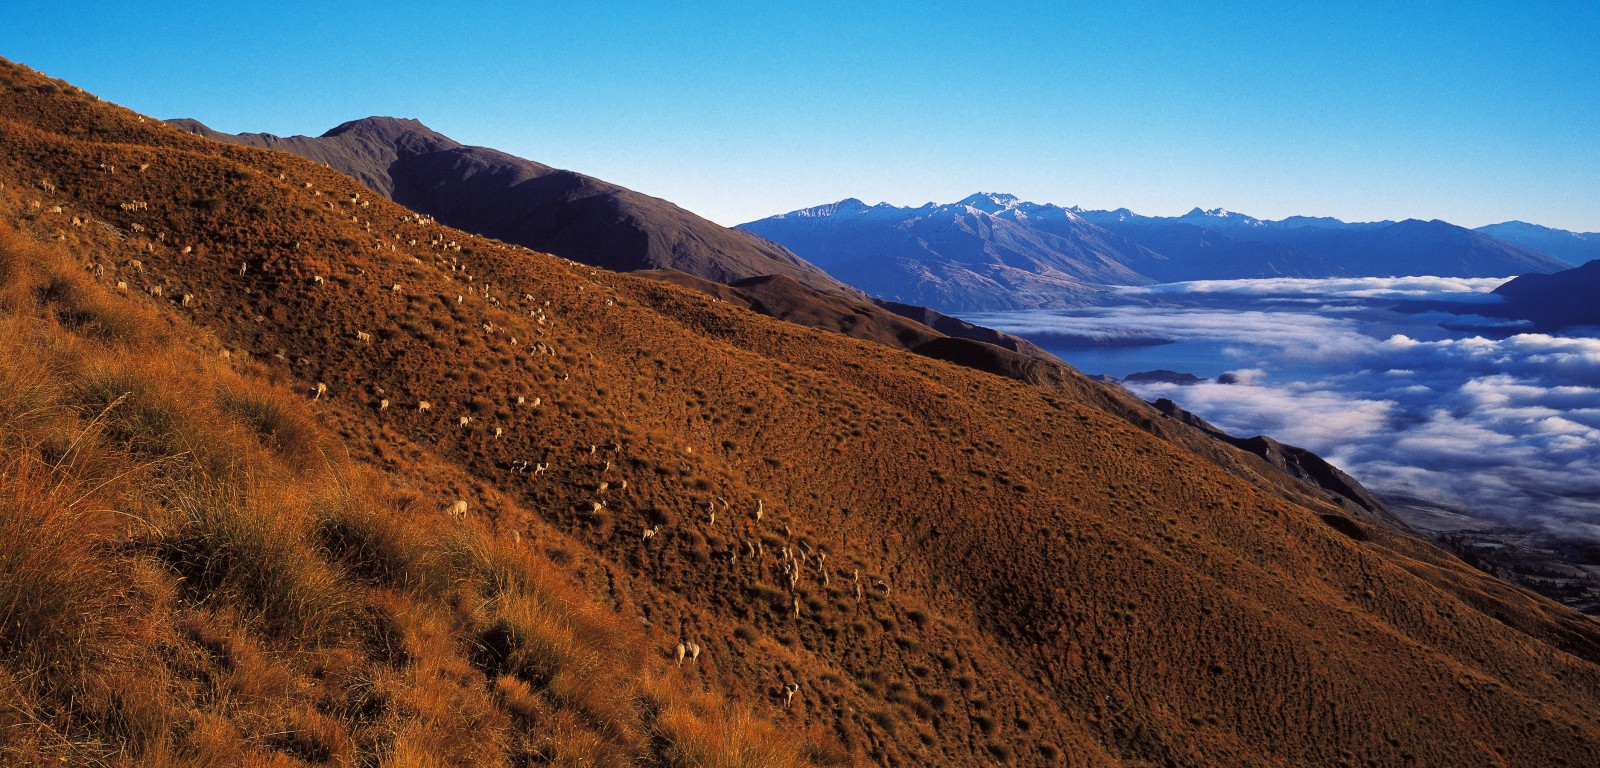 High-country tussock has traditionally provided grazing and shelter for fine-woolled merino sheep, which do little lasting harm to the plants.